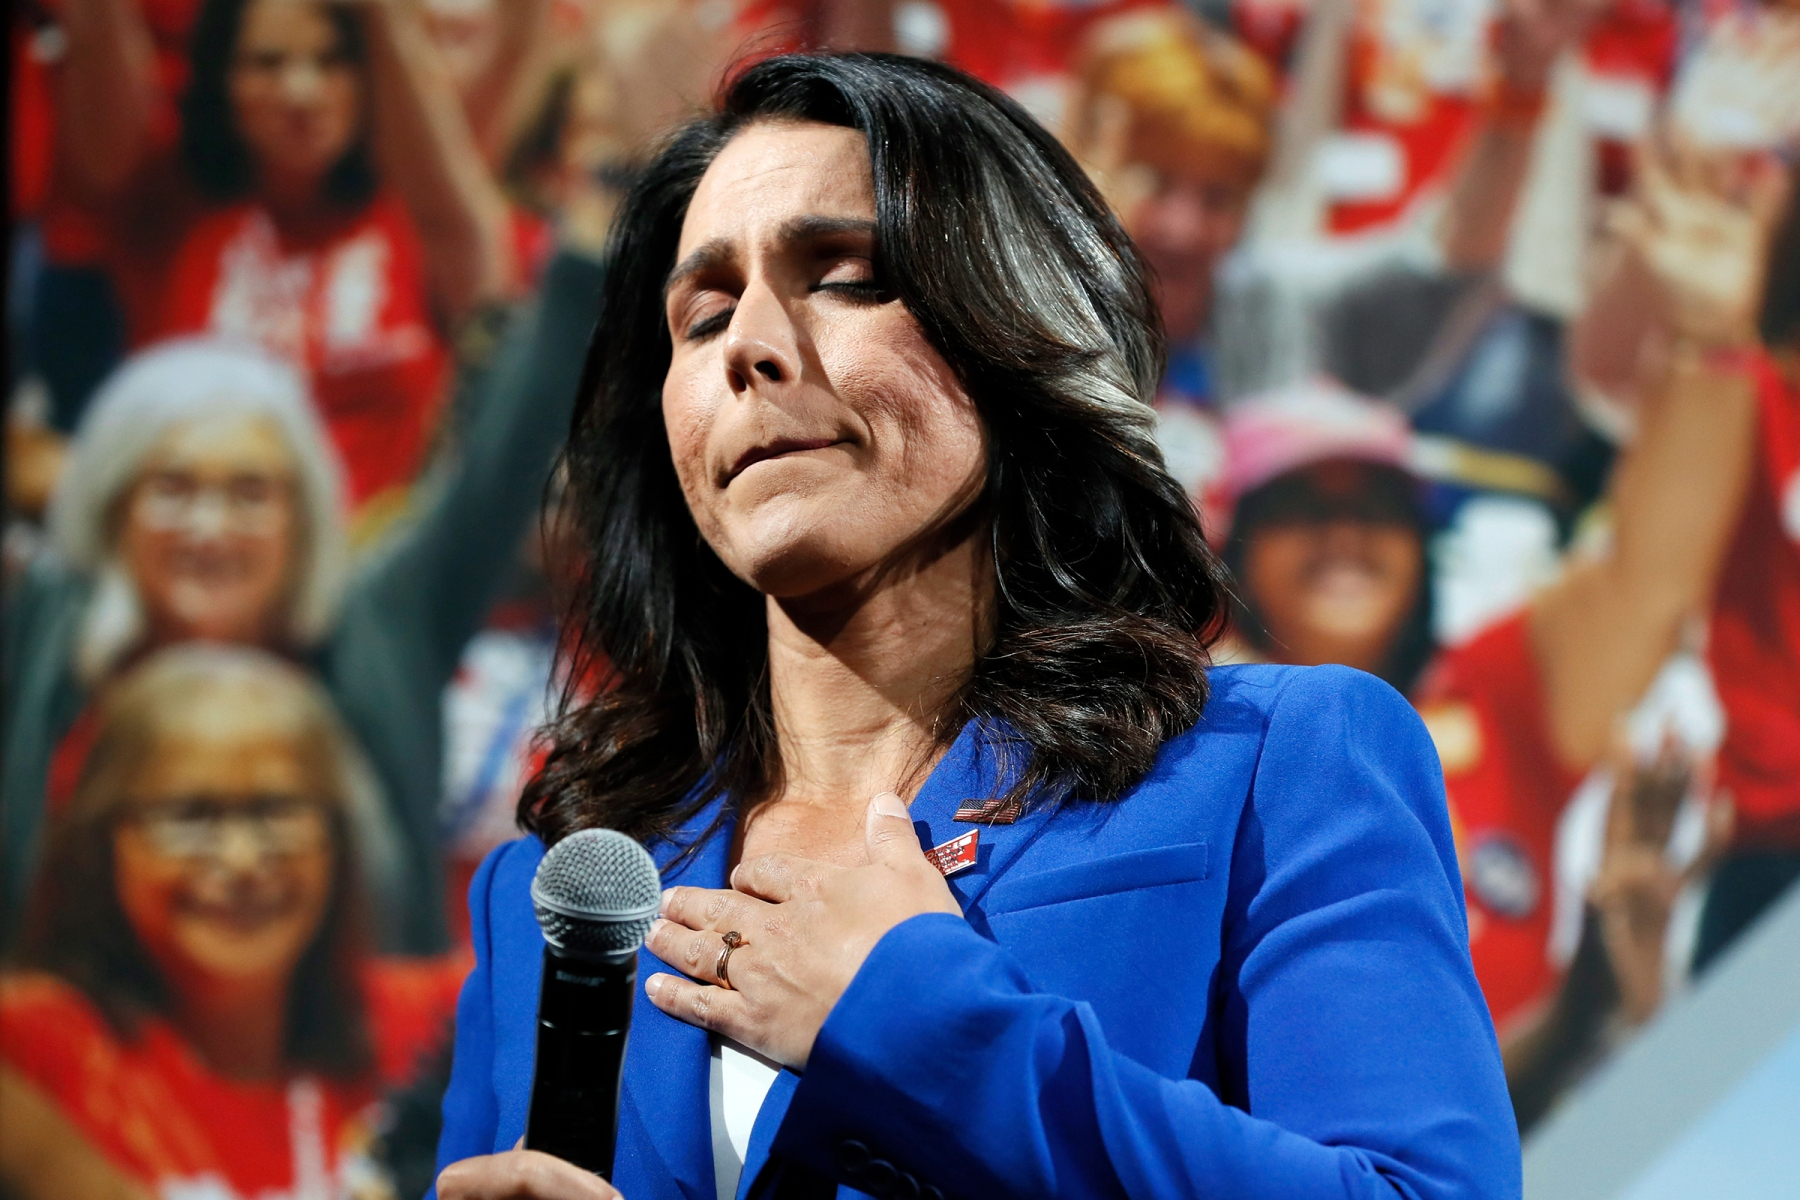 Democratic presidential candidate Rep. Tulsi Gabbard reacts as she listens to a question from the audience during the Presidential Gun Sense Forum, in Des Moines, IowaElection 2020 Tulsi Gabbard, Des Moines, USA - 10 Aug 2019